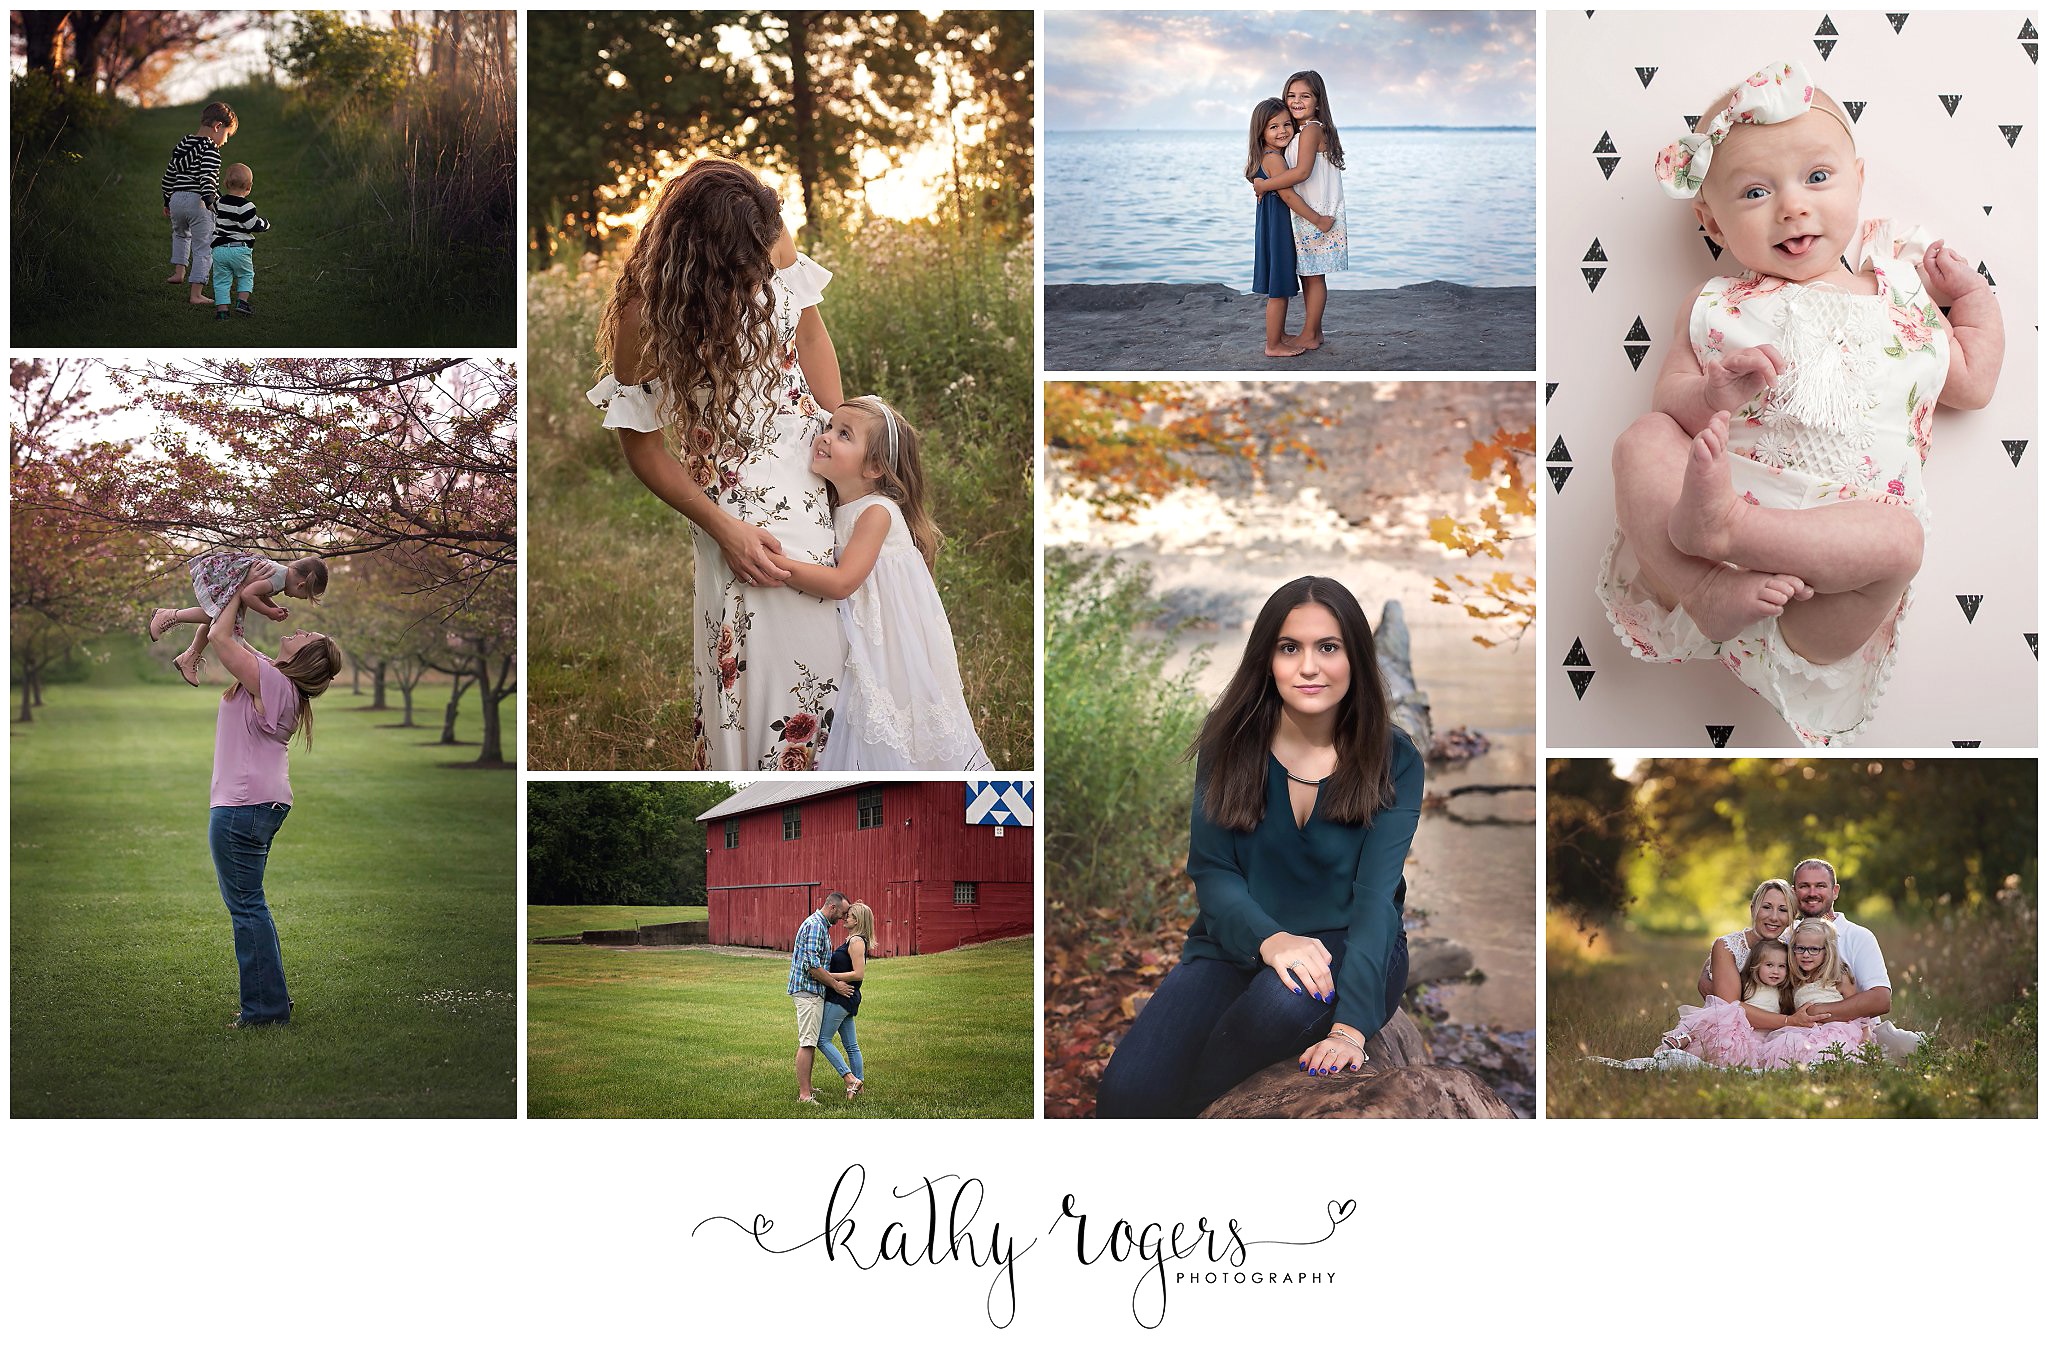 kathy rogers photography_lorain county photography_amherst photographer_family photographer_child photographer_newborn photographer